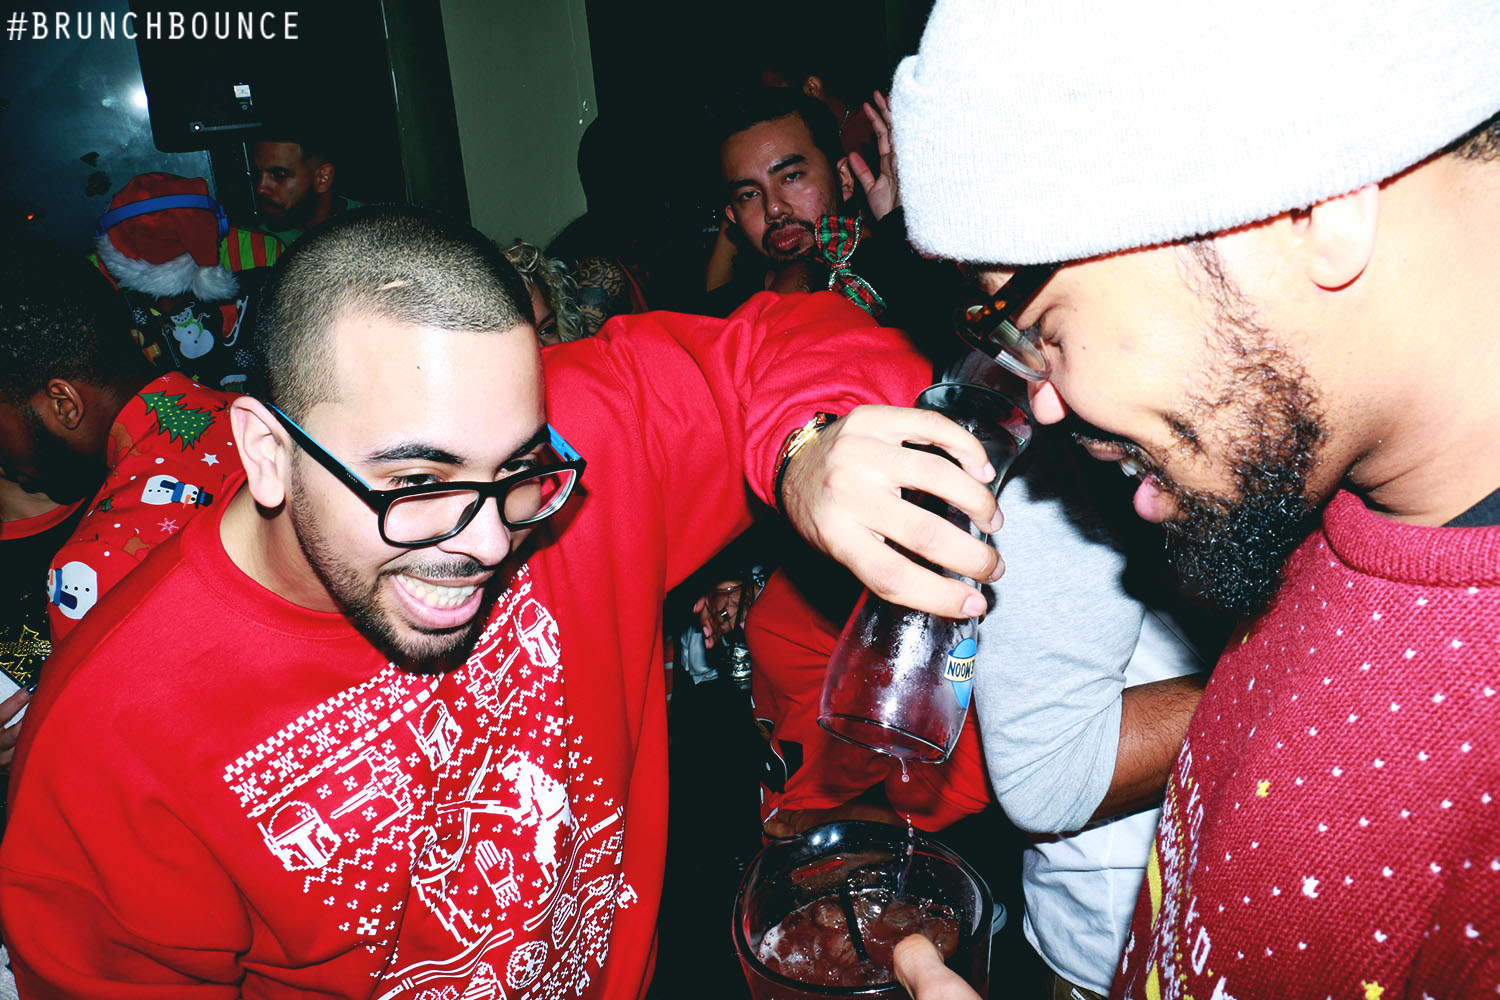 brunchbounce-ugly-christmas-sweater-party-122014_15895439840_o.jpg